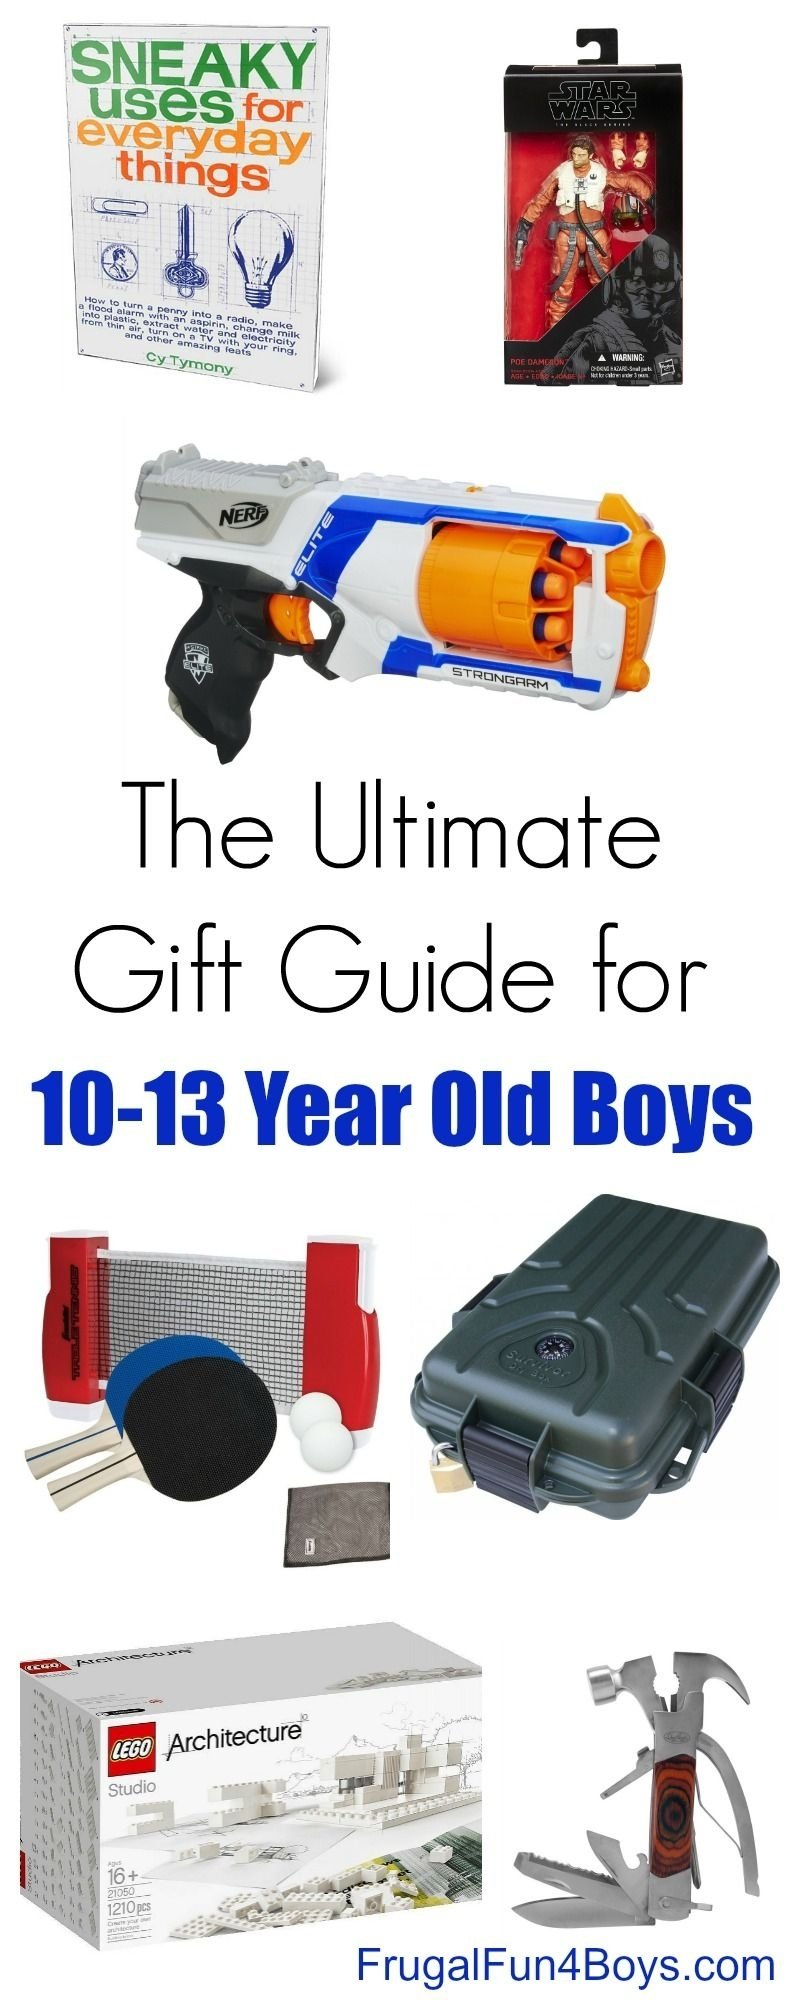 10 Stylish Gift Ideas For 10 Yr Old Boy gift ideas for 10 to 13 year old boys gaming gift and books 4 2020